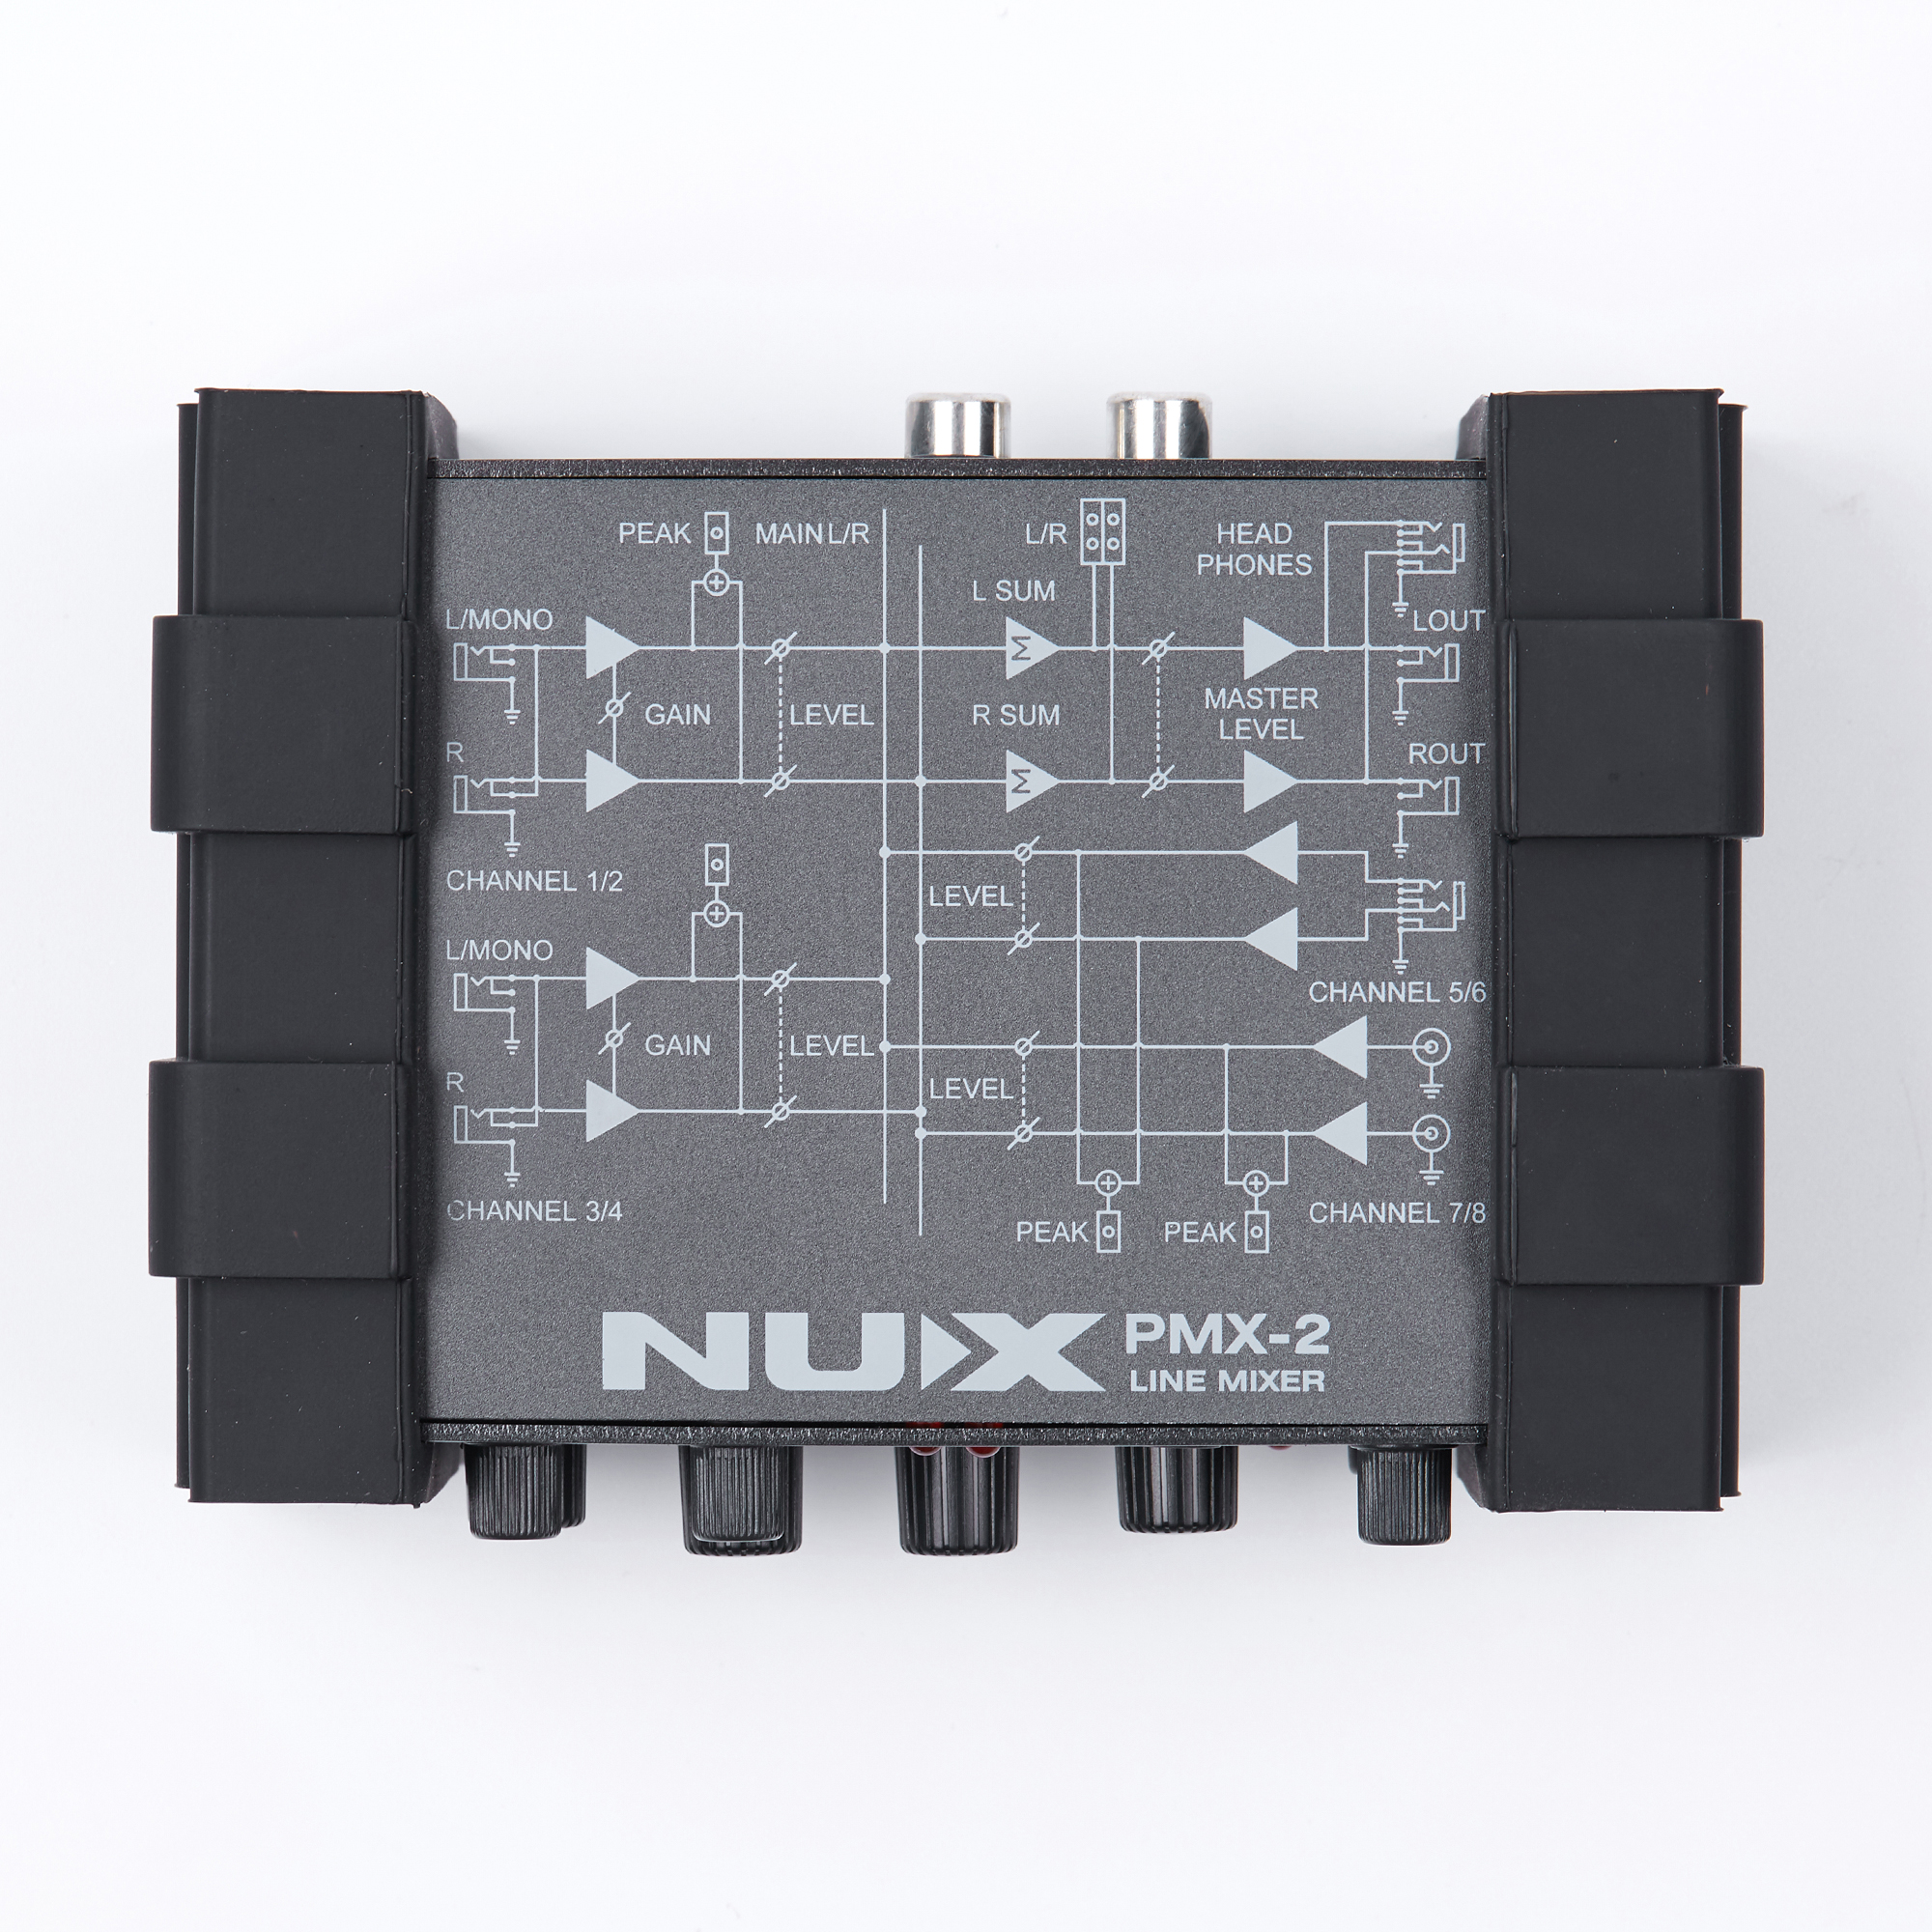 Gain Control 8 Inputs and 2 Outputs NUX PMX-2 Multi-Channel Mini Mixer 30 Musical Instruments Accessories for Guitar Bass Player домкрат wiederkraft wdk 81050